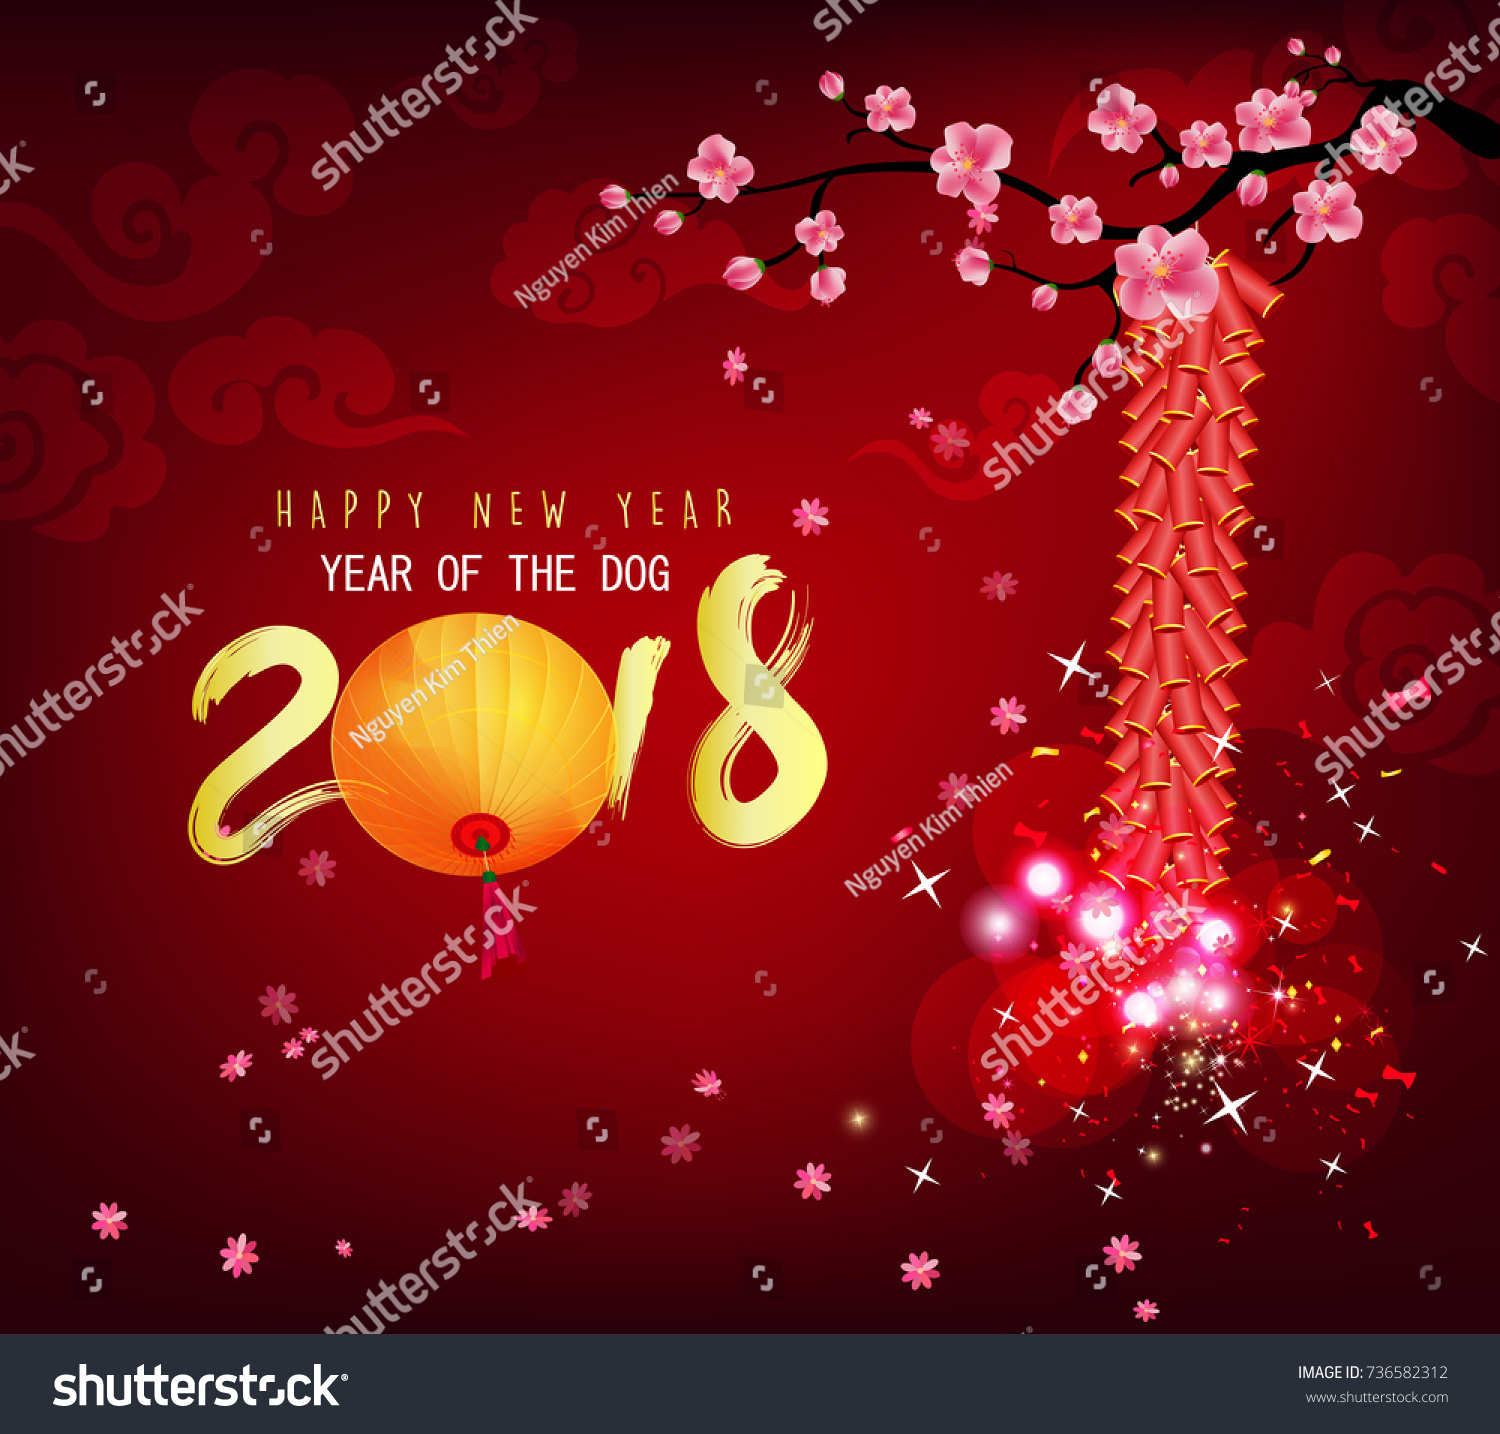 Happy new year 2018 greeting card stock illustration 736582312 happy new year 2018 greeting card chinese new year of ther dog kristyandbryce Images